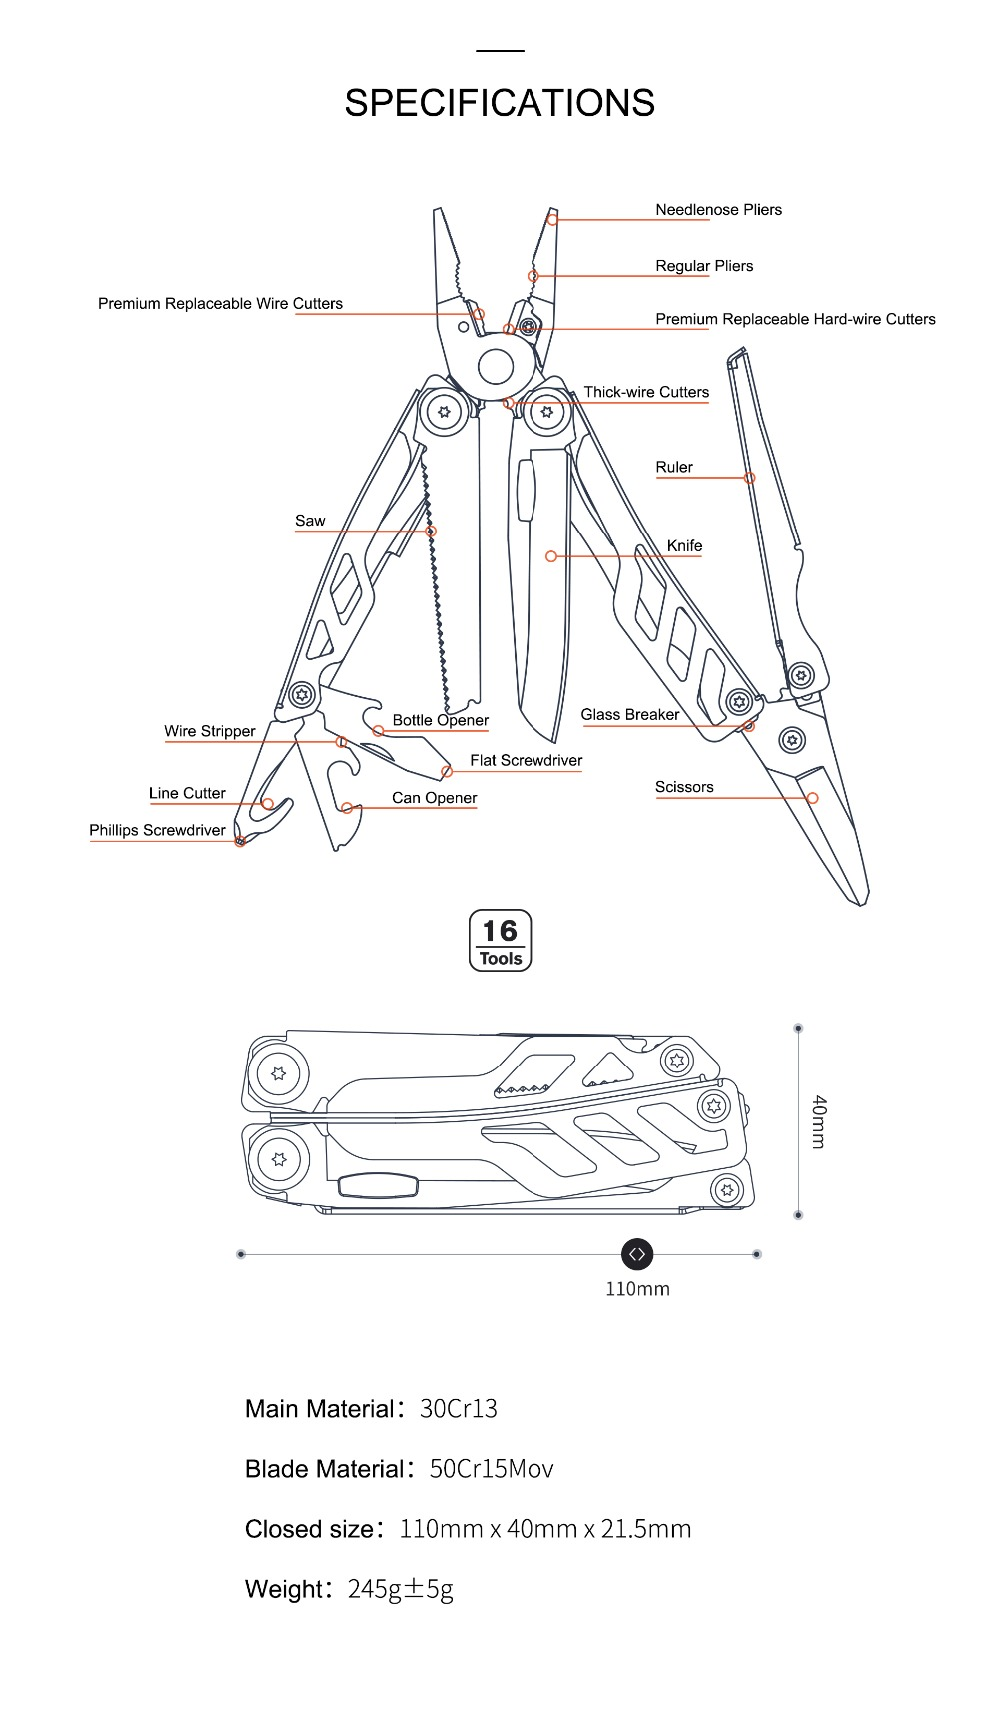 17-Specifications